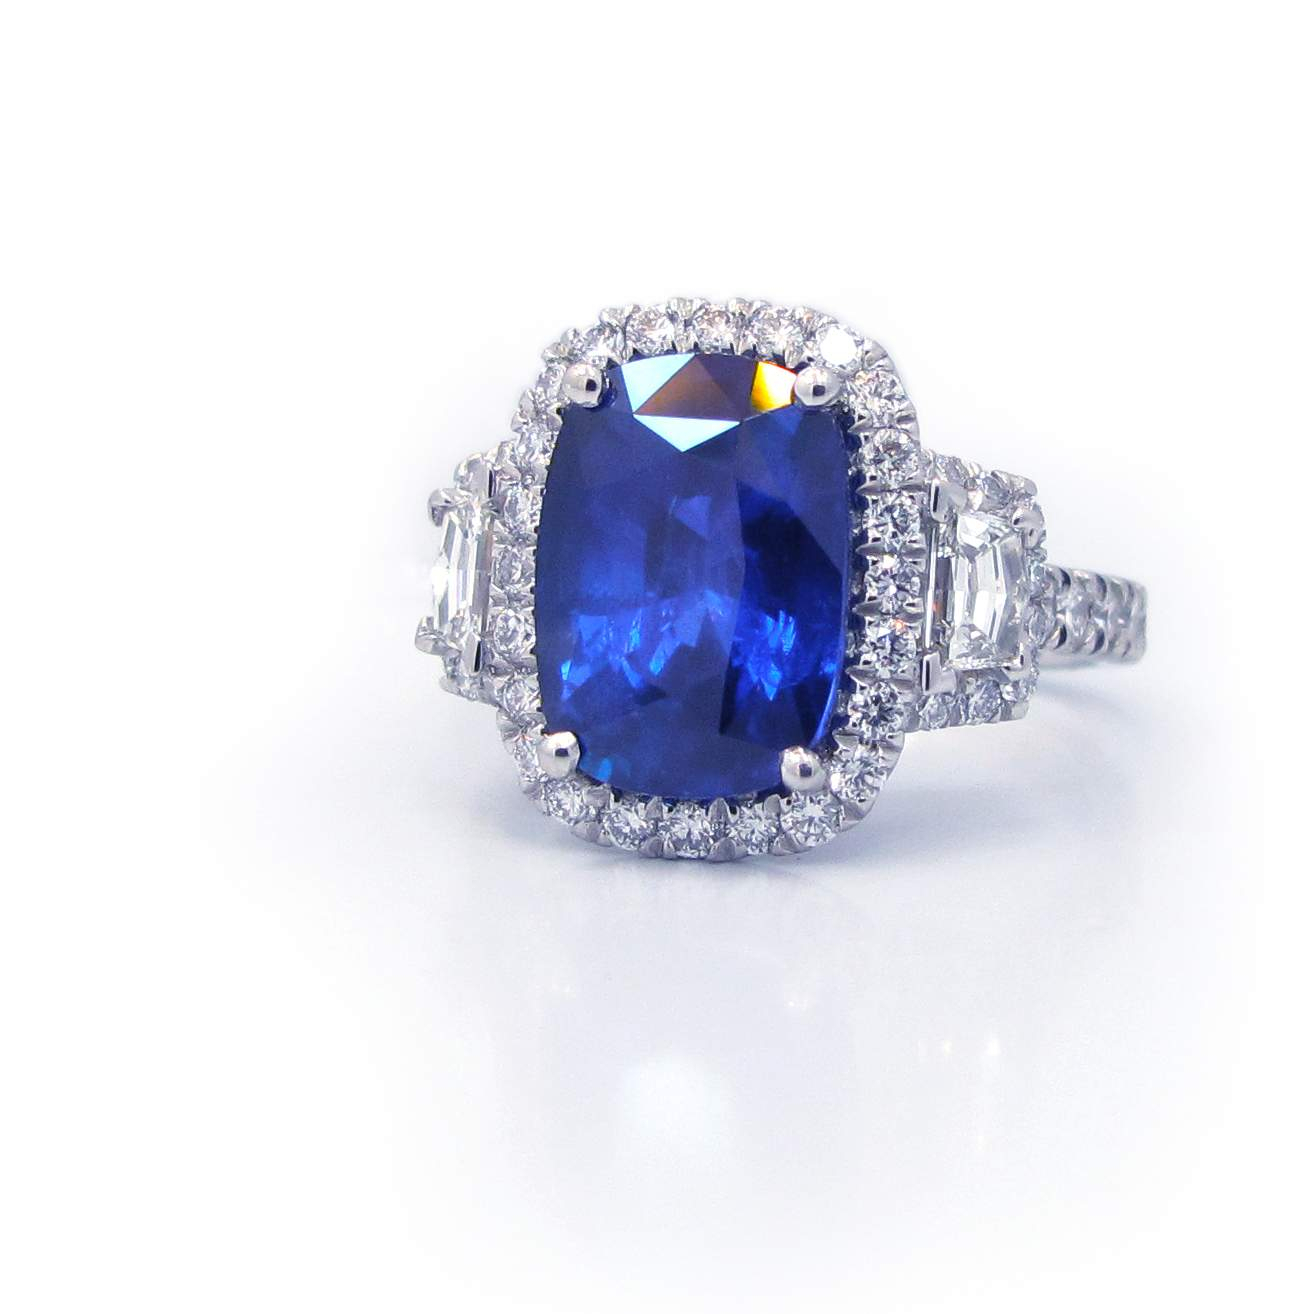 Cushion Cut Blue Sapphire And Diamond Ring In Platinum Regarding Cushion Cut Sapphire Rings (View 7 of 25)